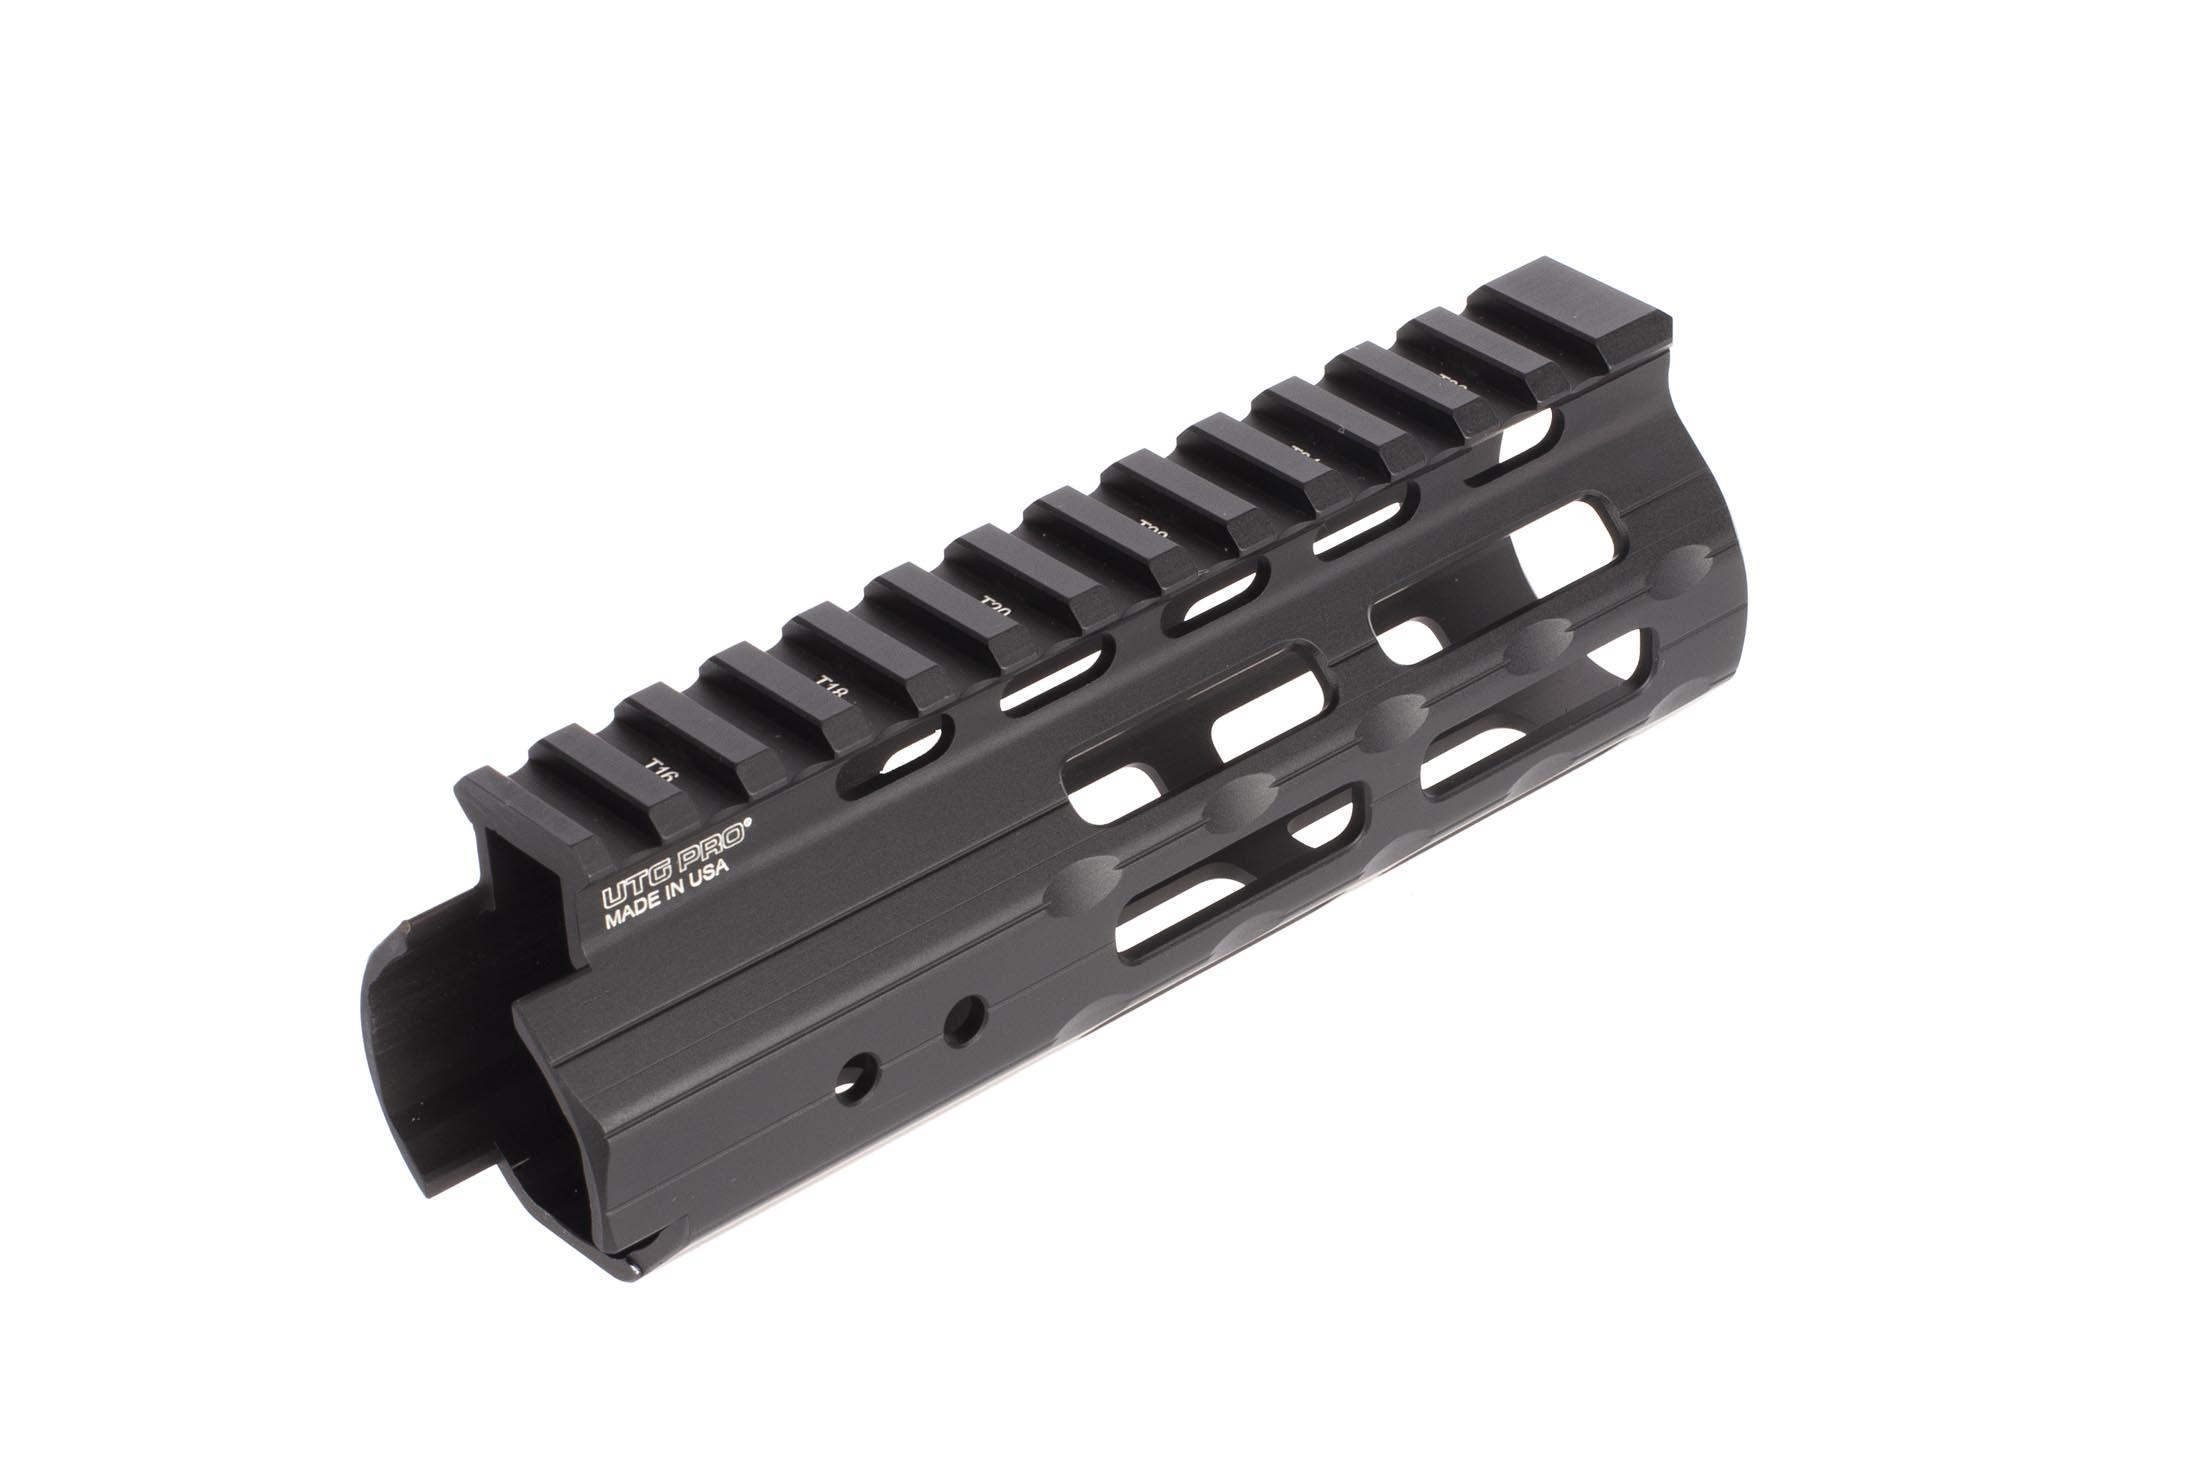 Leapers UTG PRO Super Slip handguard for AR-15 pistols is just 5.5in, 3.7 oz, and features anti-rotation tabs